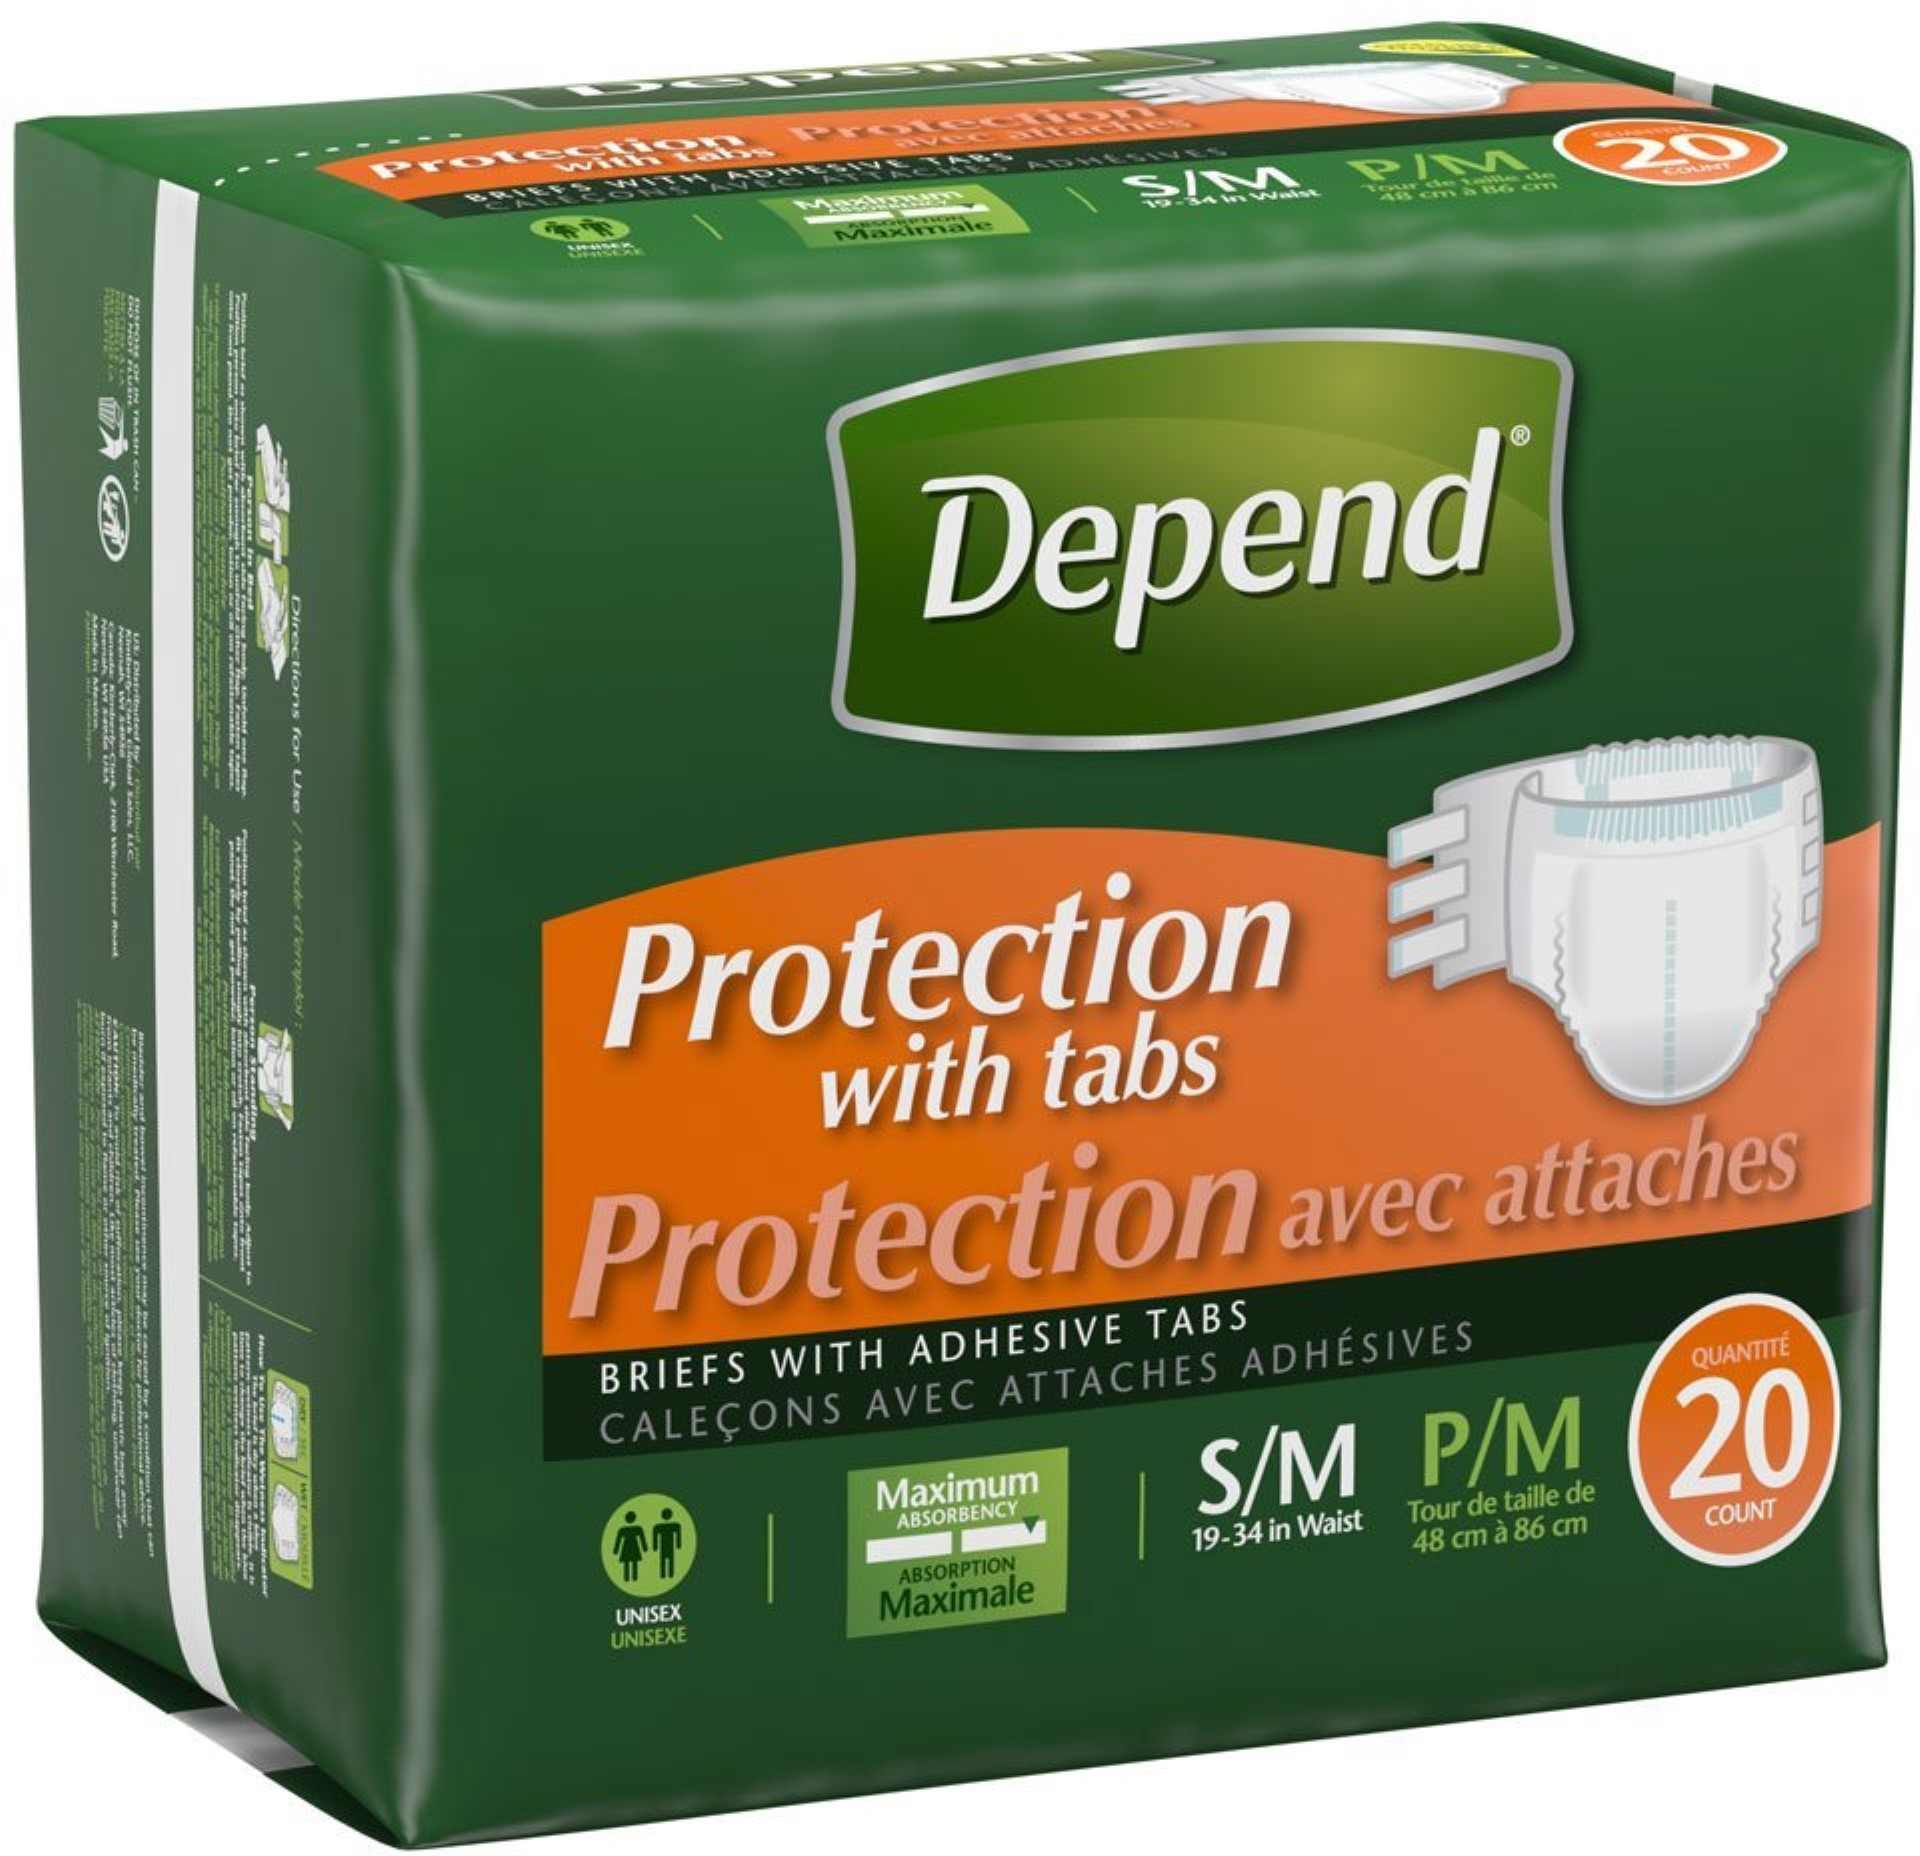 6 Pack - Depend Protection with Tabs Incontinence Underwear, Maximum Absorbency, Small/Medium 20 ea